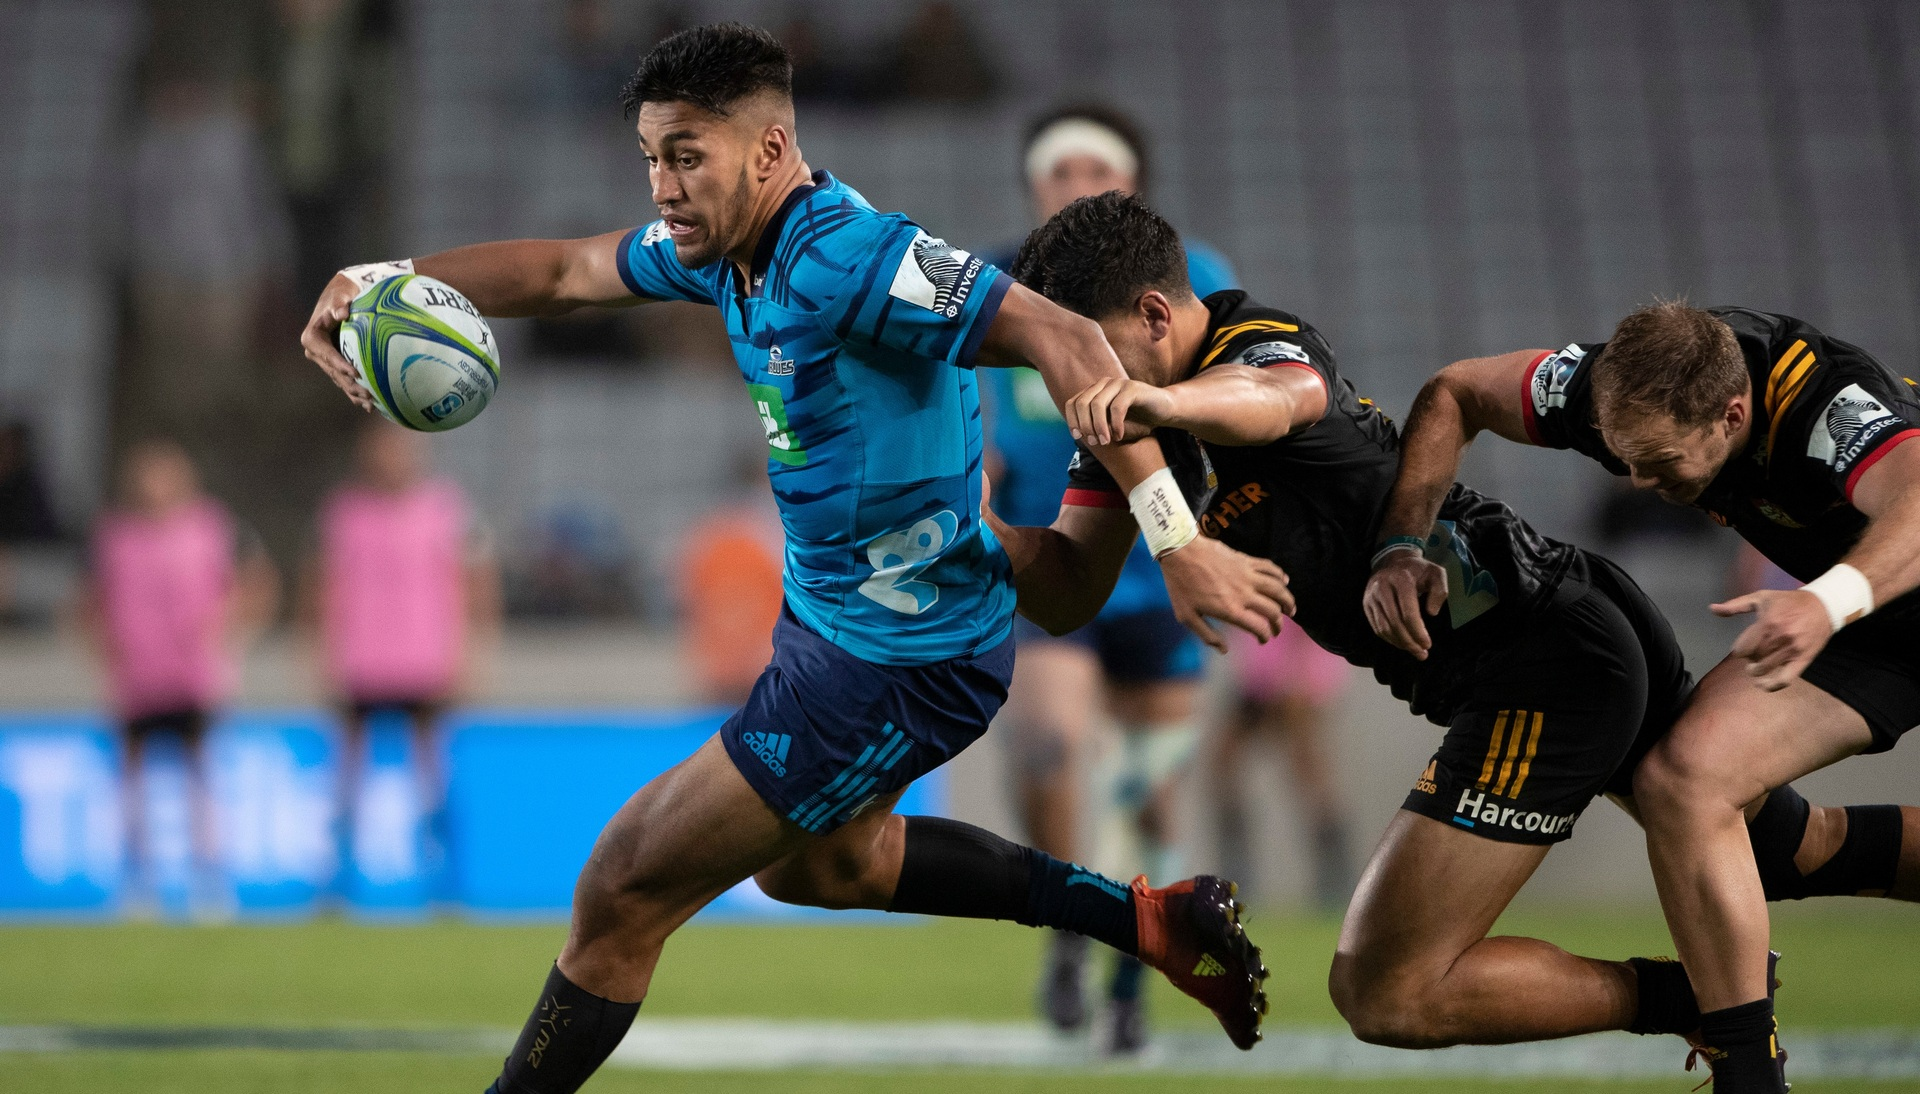 Summer rugby, early kickoffs: Super Rugby's surprising new schedule